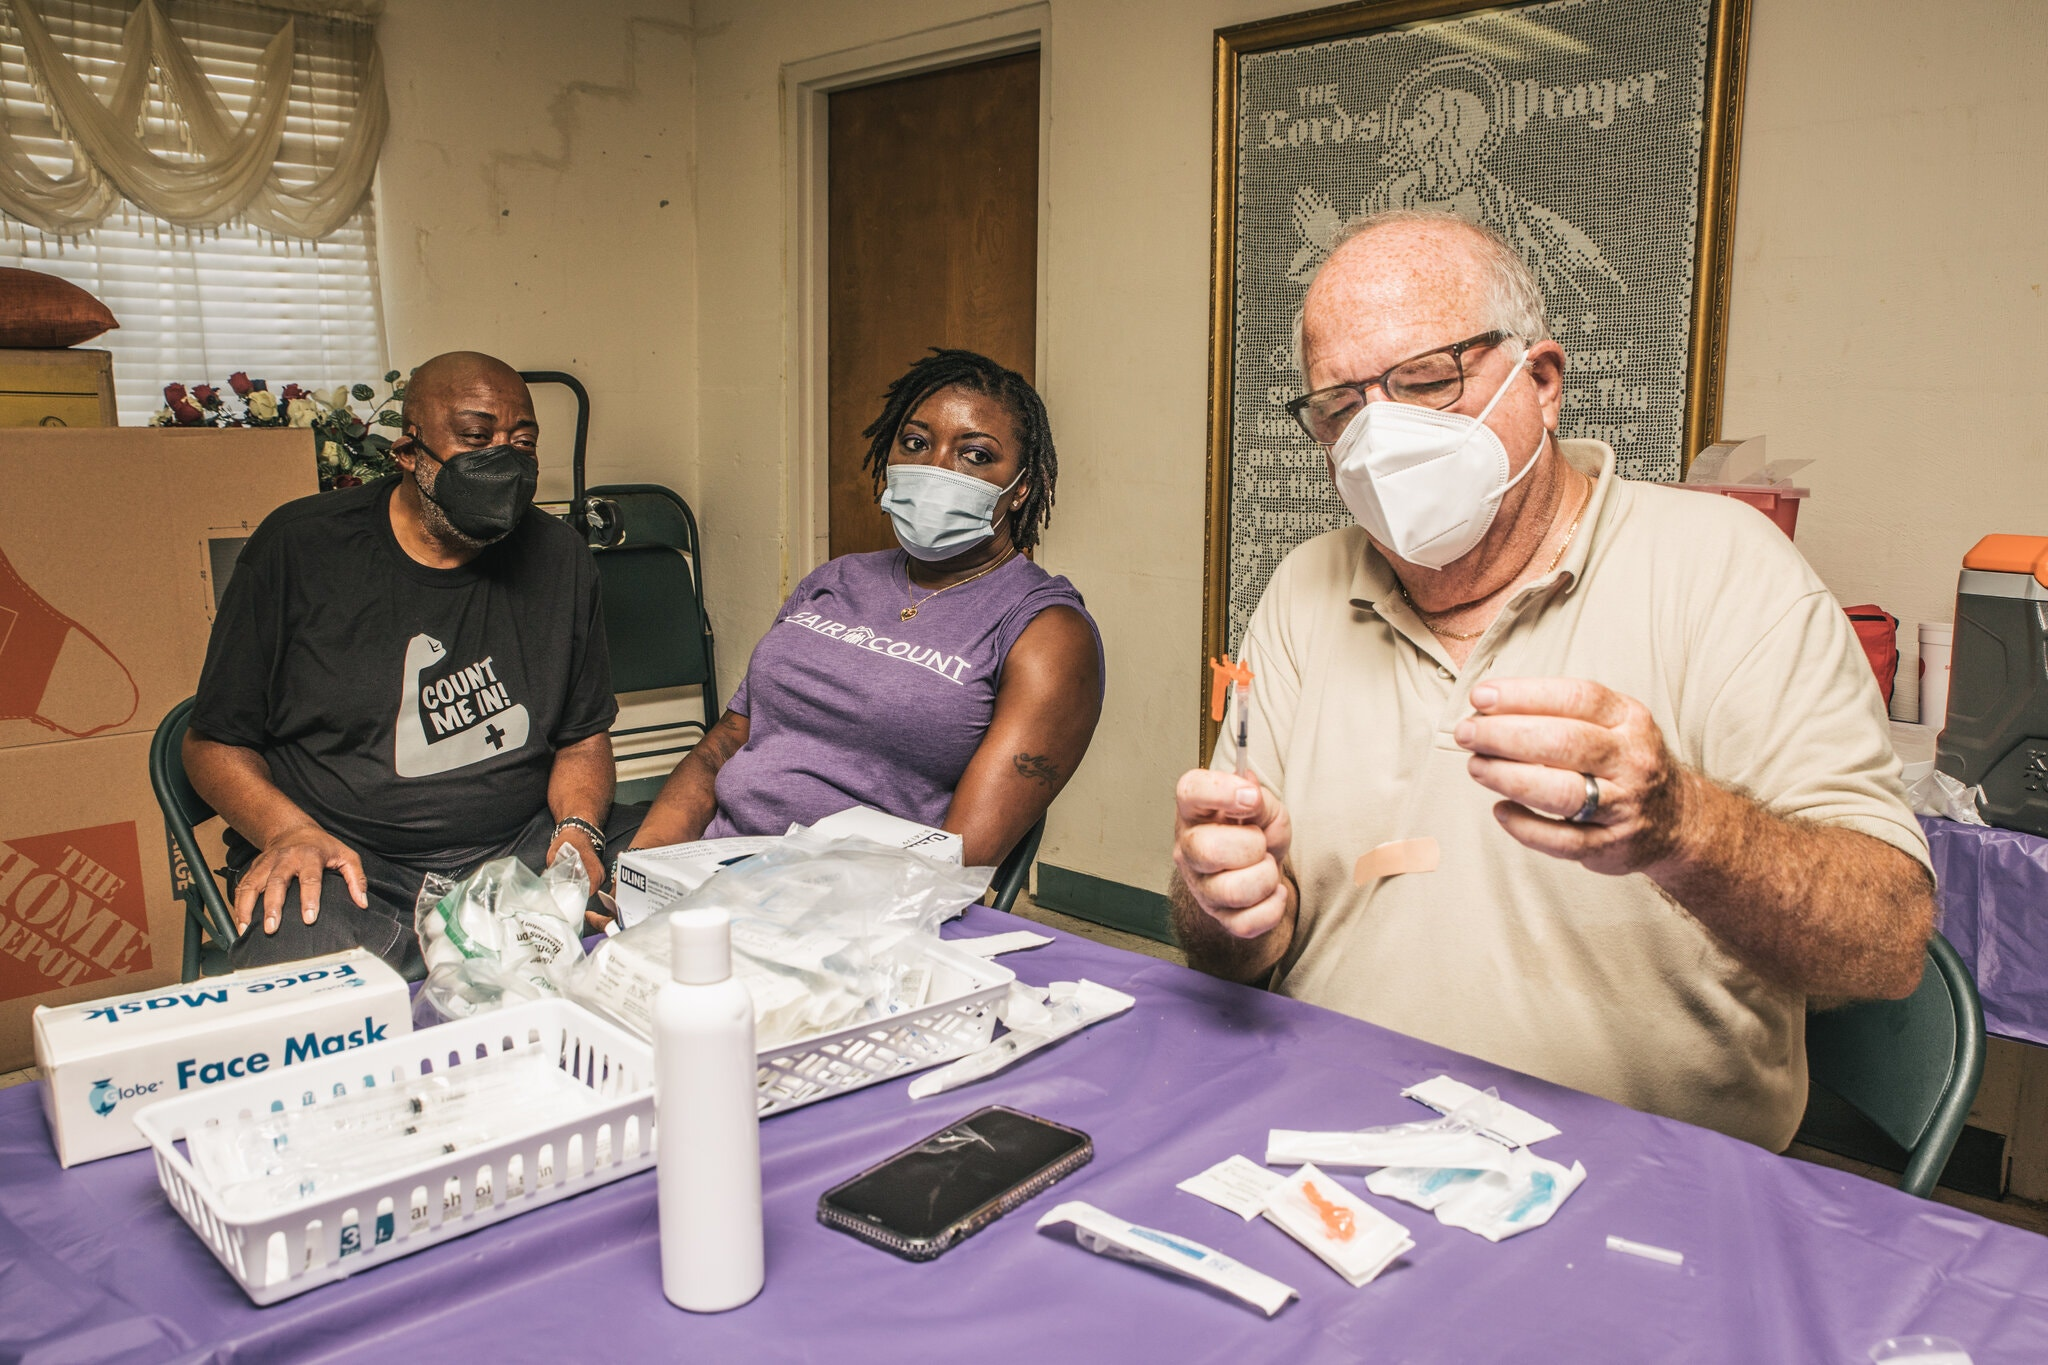 A vaccine being prepared at the Grant Chapel AME Church in Moultrie, Ga, organized through the Count Me In initiative, on Saturday. Credit Matthew Odom for The New York Times